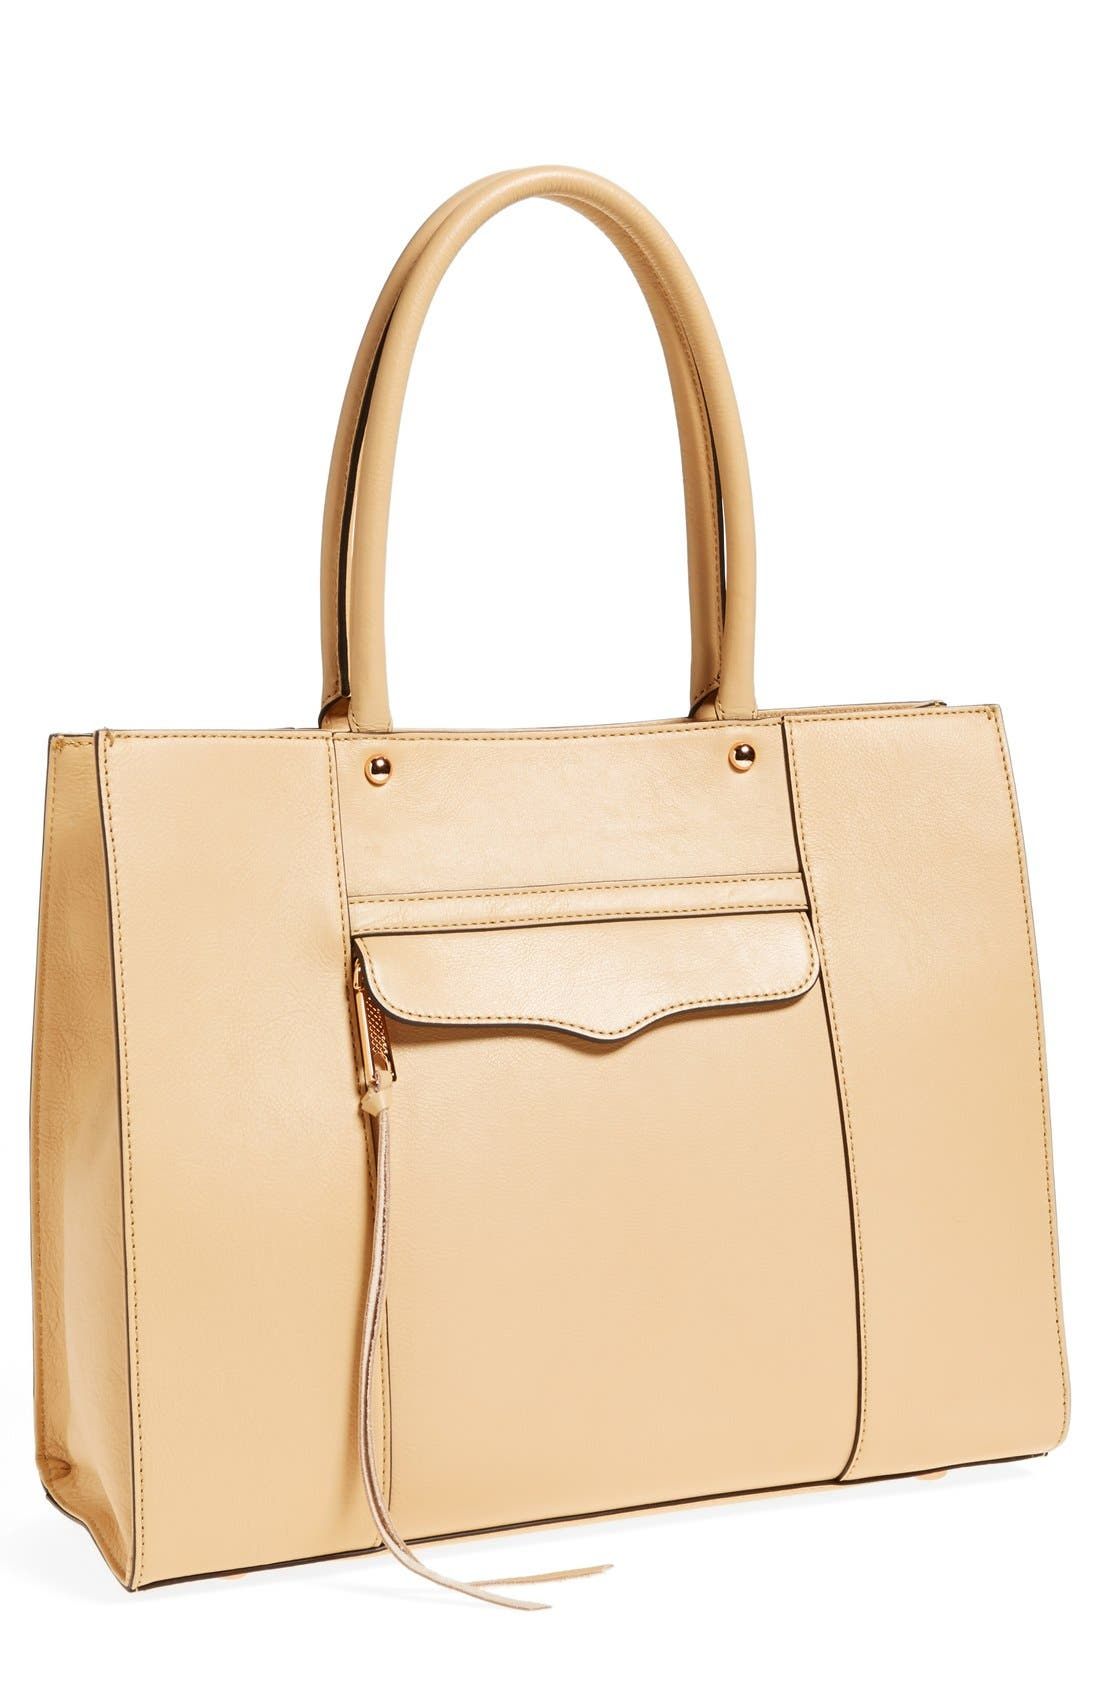 Main Image - Rebecca Minkoff 'Medium MAB' Leather Tote